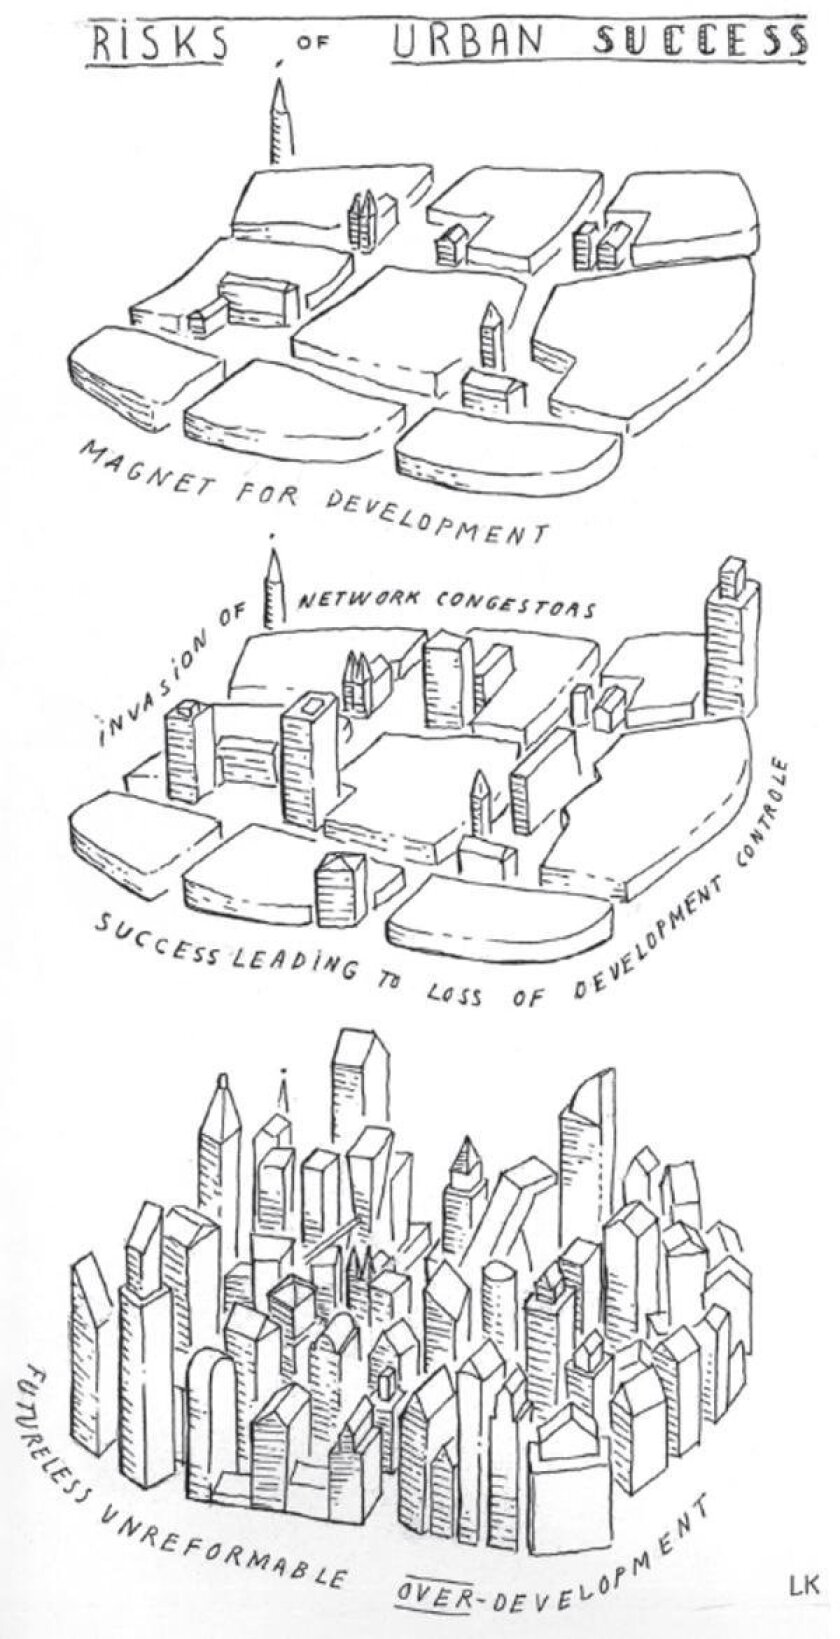 Léon Krier warns that overdevelopment leads to unmanageable congestion and high-rise buildings competing for attention. - Léon Krier drawing